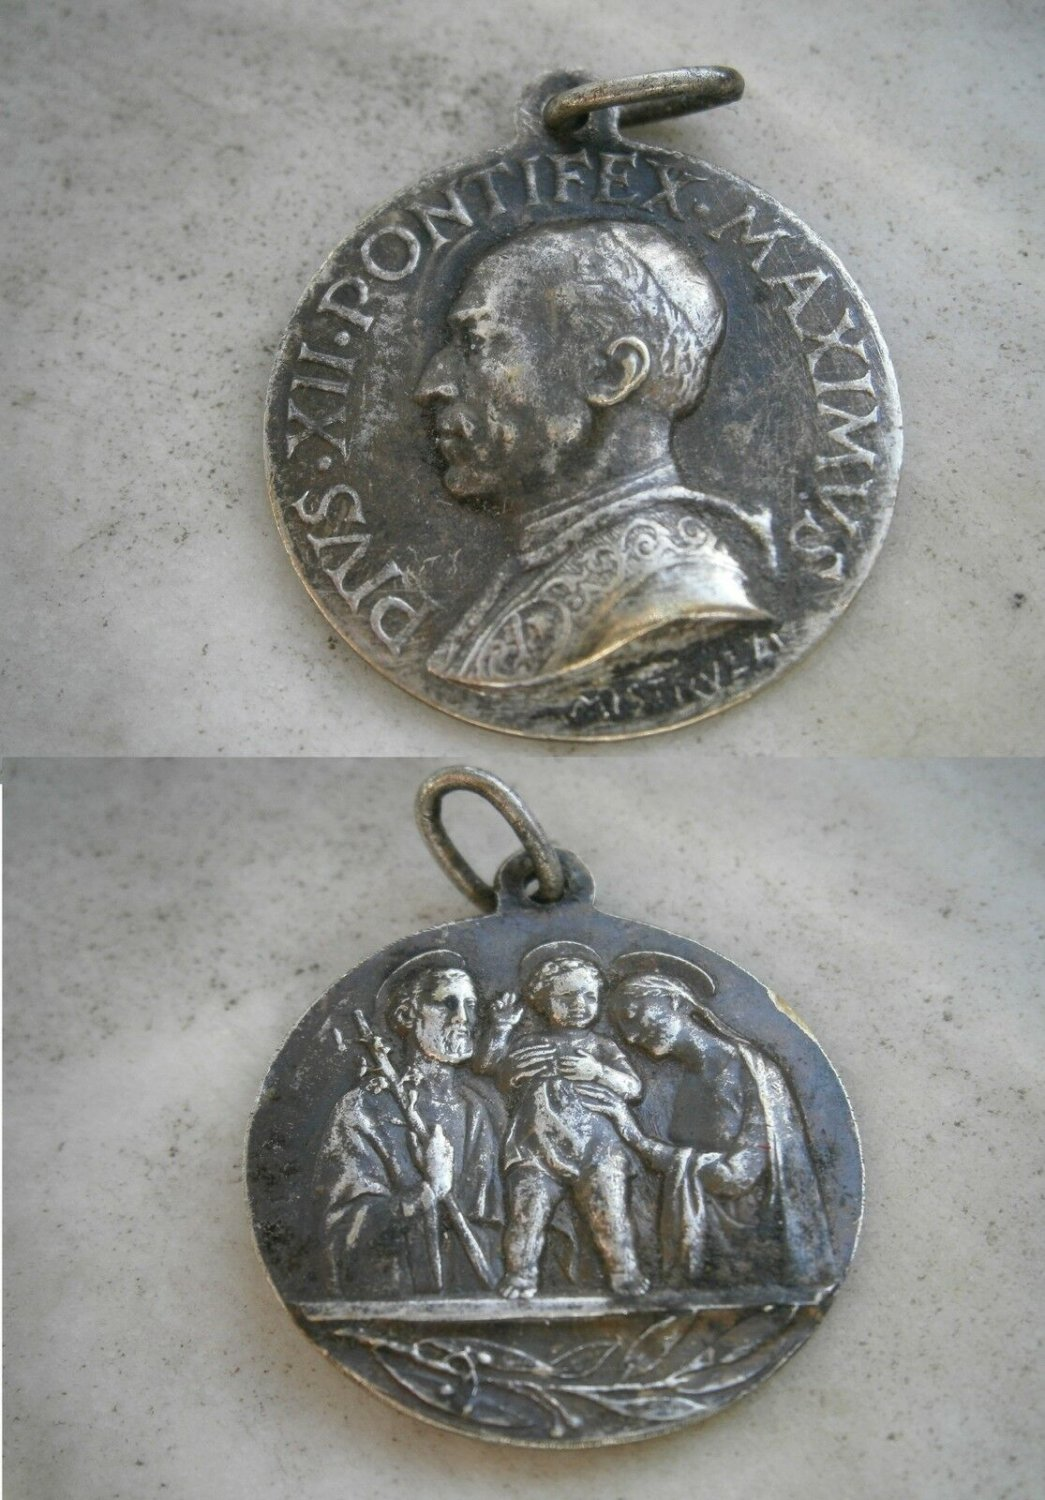 MEDAL in SILVER 800 of Pope Pacelli Pio XII Original 1950 Engraved by Aurelio Mistruzzi